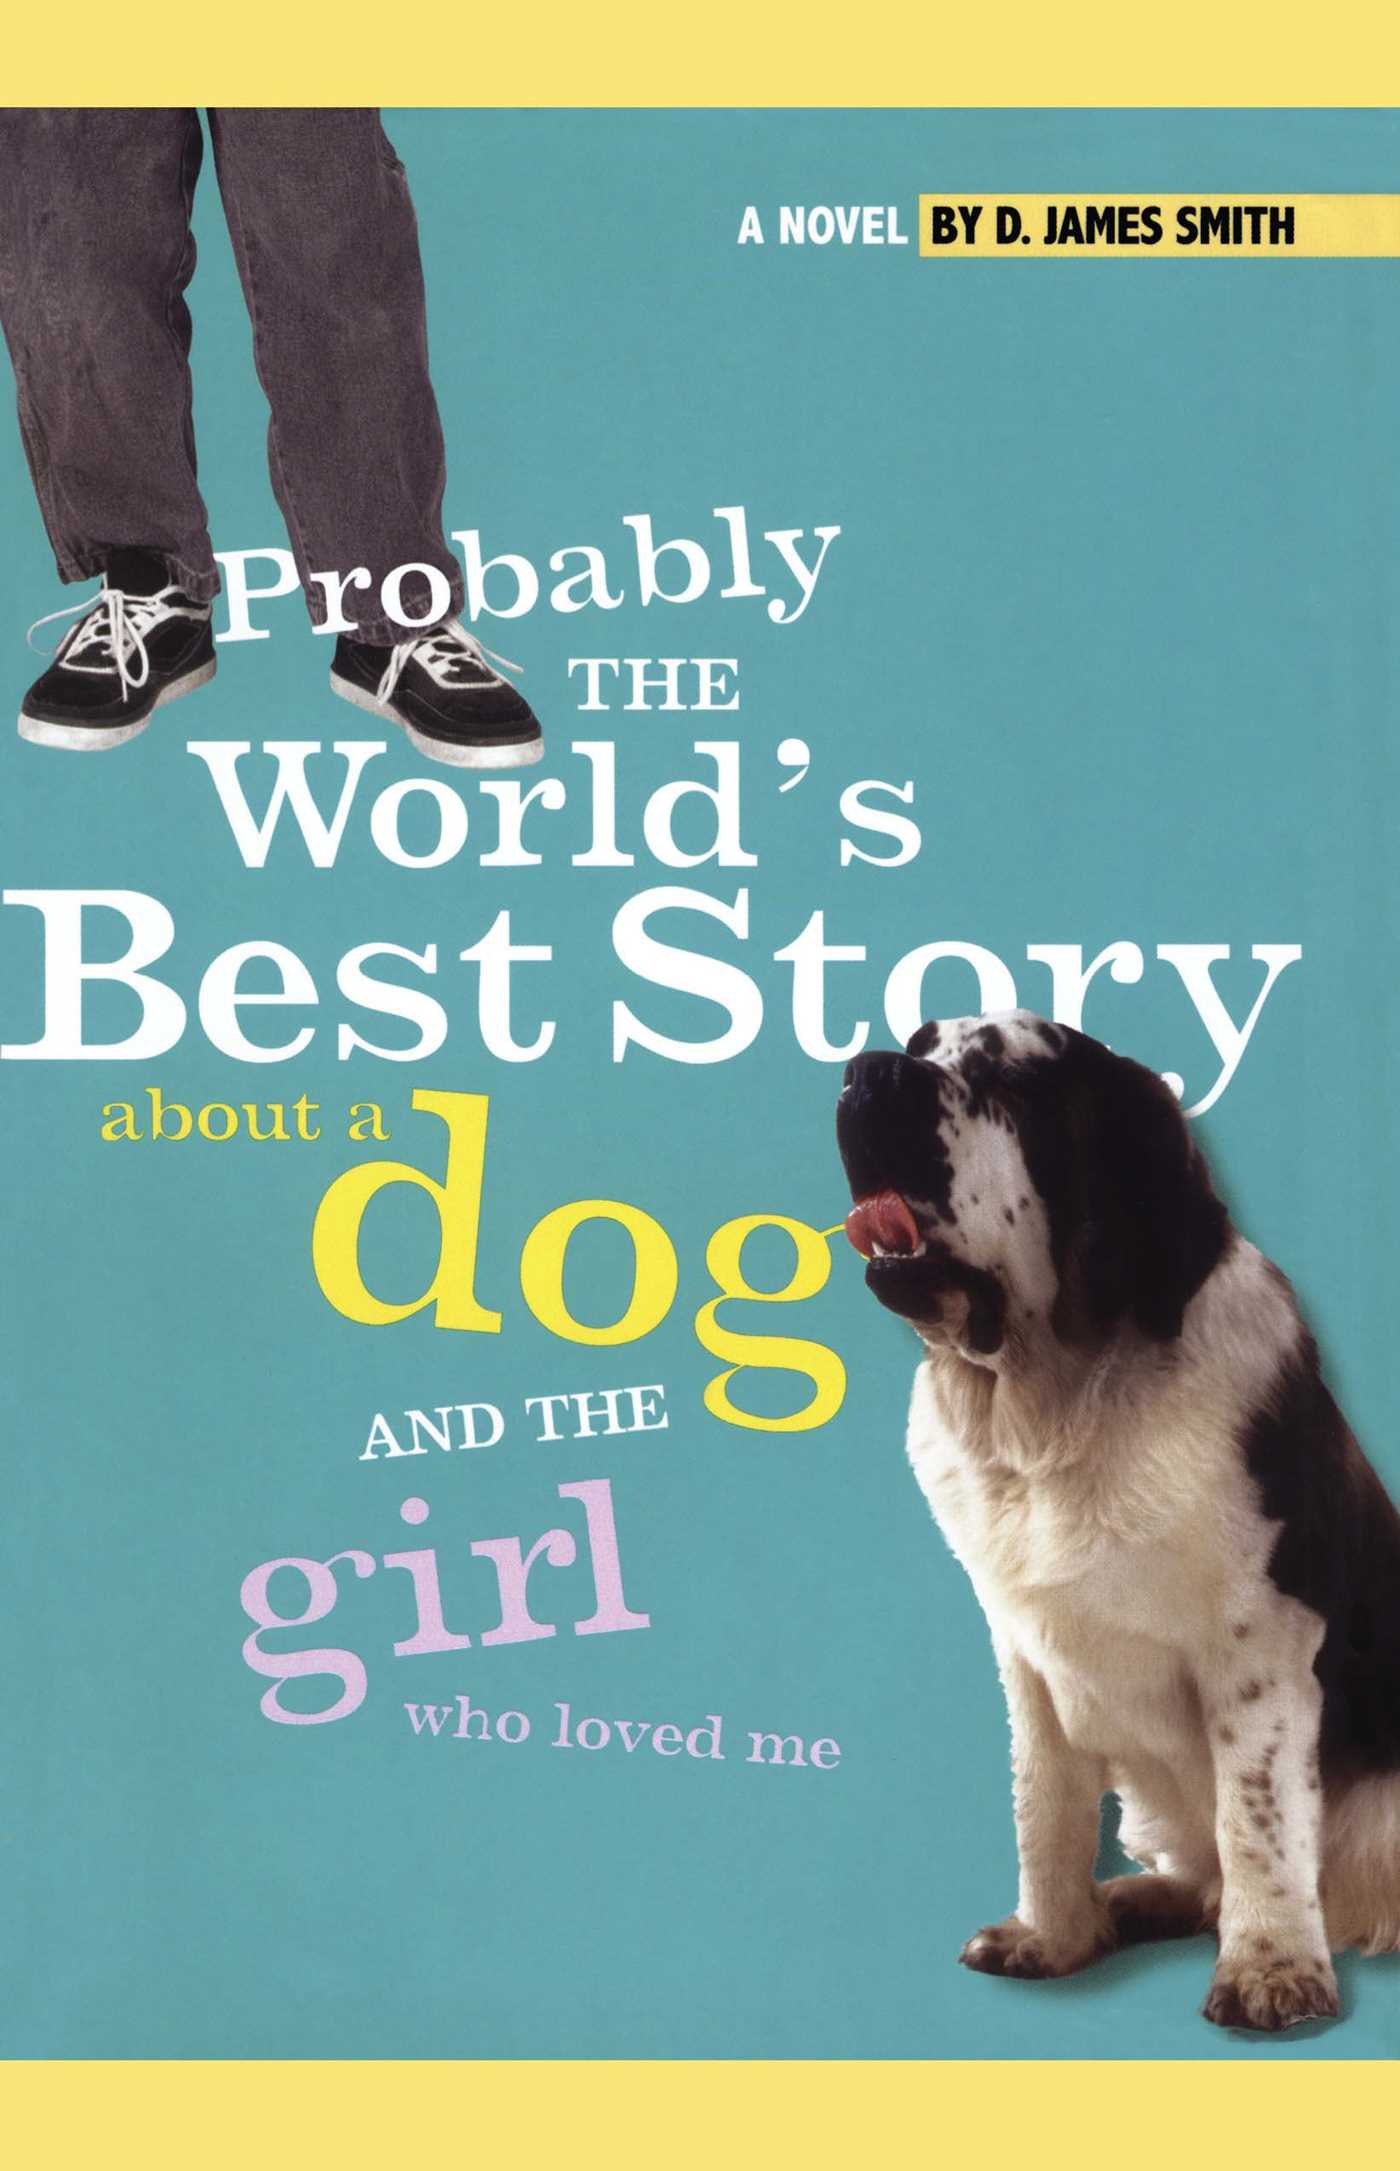 Probably-the-worlds-best-story-about-a-dog-and-th-9781442421943_hr